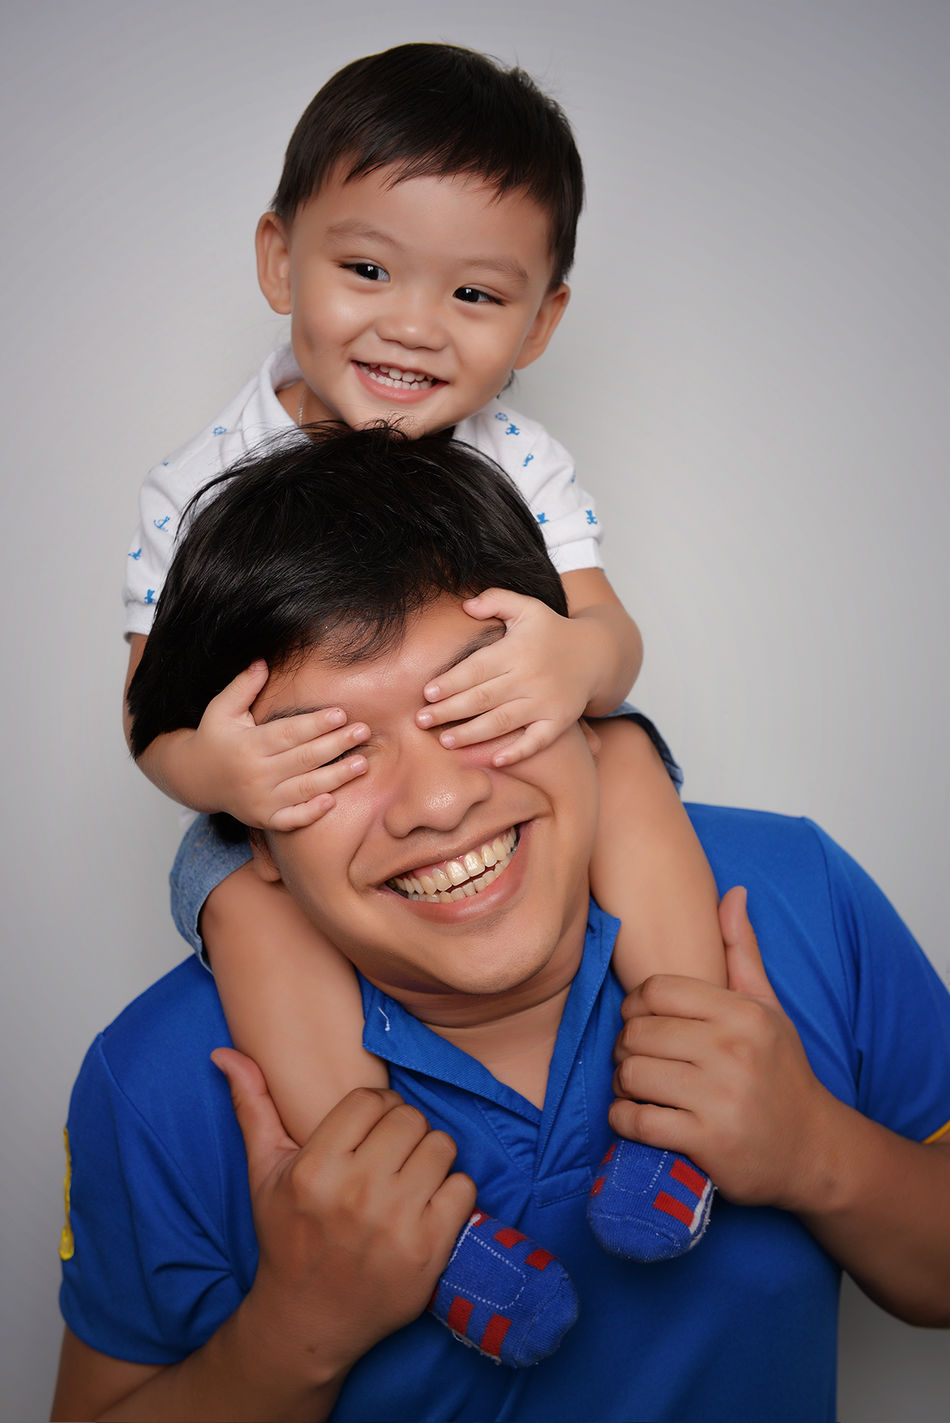 Adult Bonding Bonding Time Casual Clothing Cheerful Child Childhood Eyeem Philippines Father Father & Son Father And Son Father's Day Fatherhood  Fatherhood Moments Gray Background Happiness Indoors  People Portrait Smile Smiling Studio Shot Togetherness Toothy Smile Two People